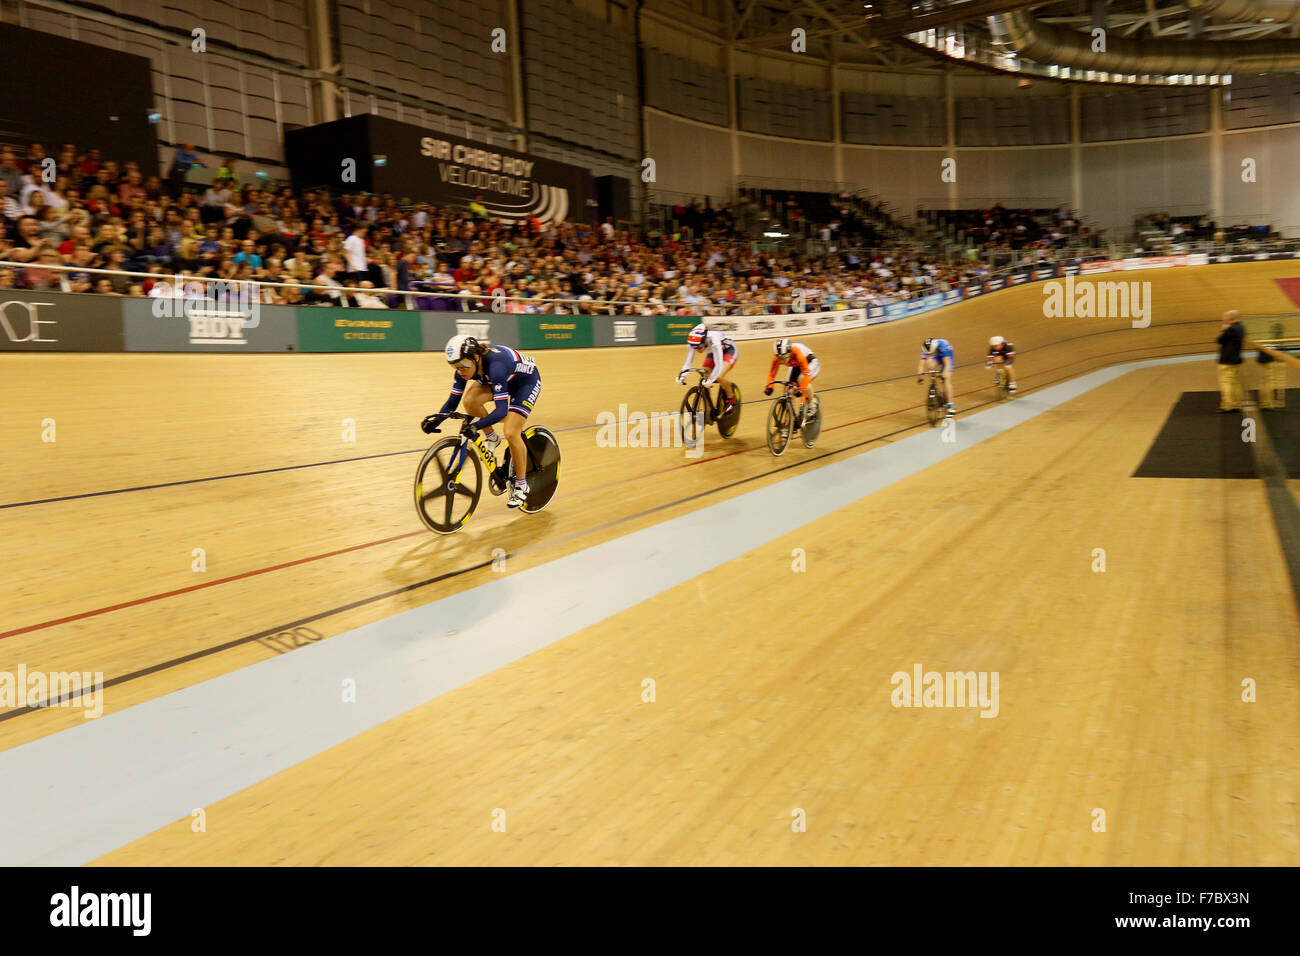 Glasgow. 28. November, Runde 2015.Revolution Serie vier. Womens längste Runde Credit: Dan Cooke/Alamy Live Stockbild